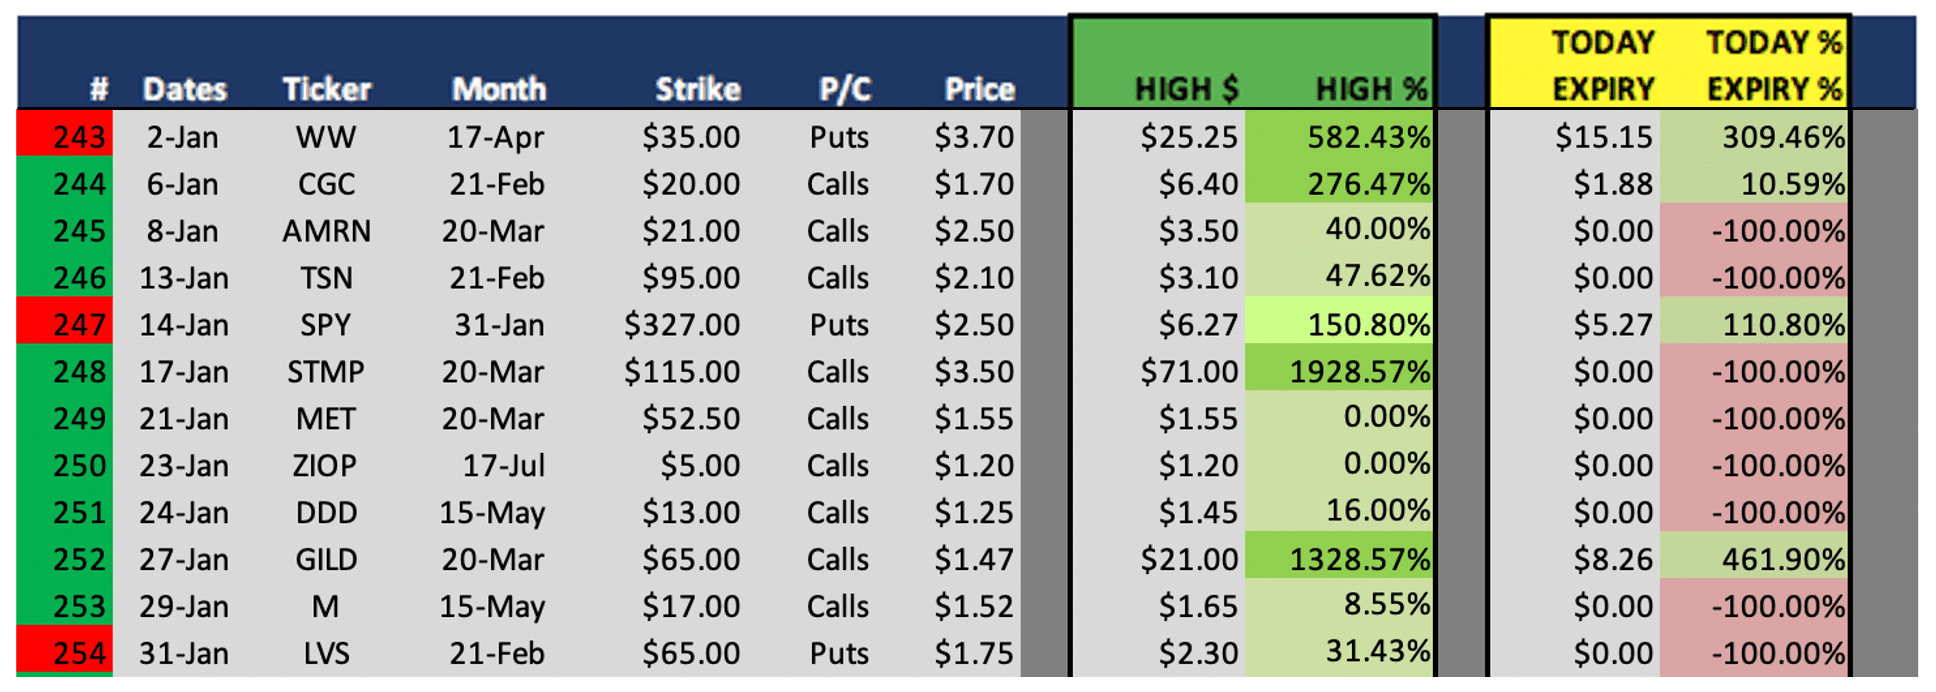 Best Options Trading Signals Winning Picks Weekly Results on January 31 243 thru 254